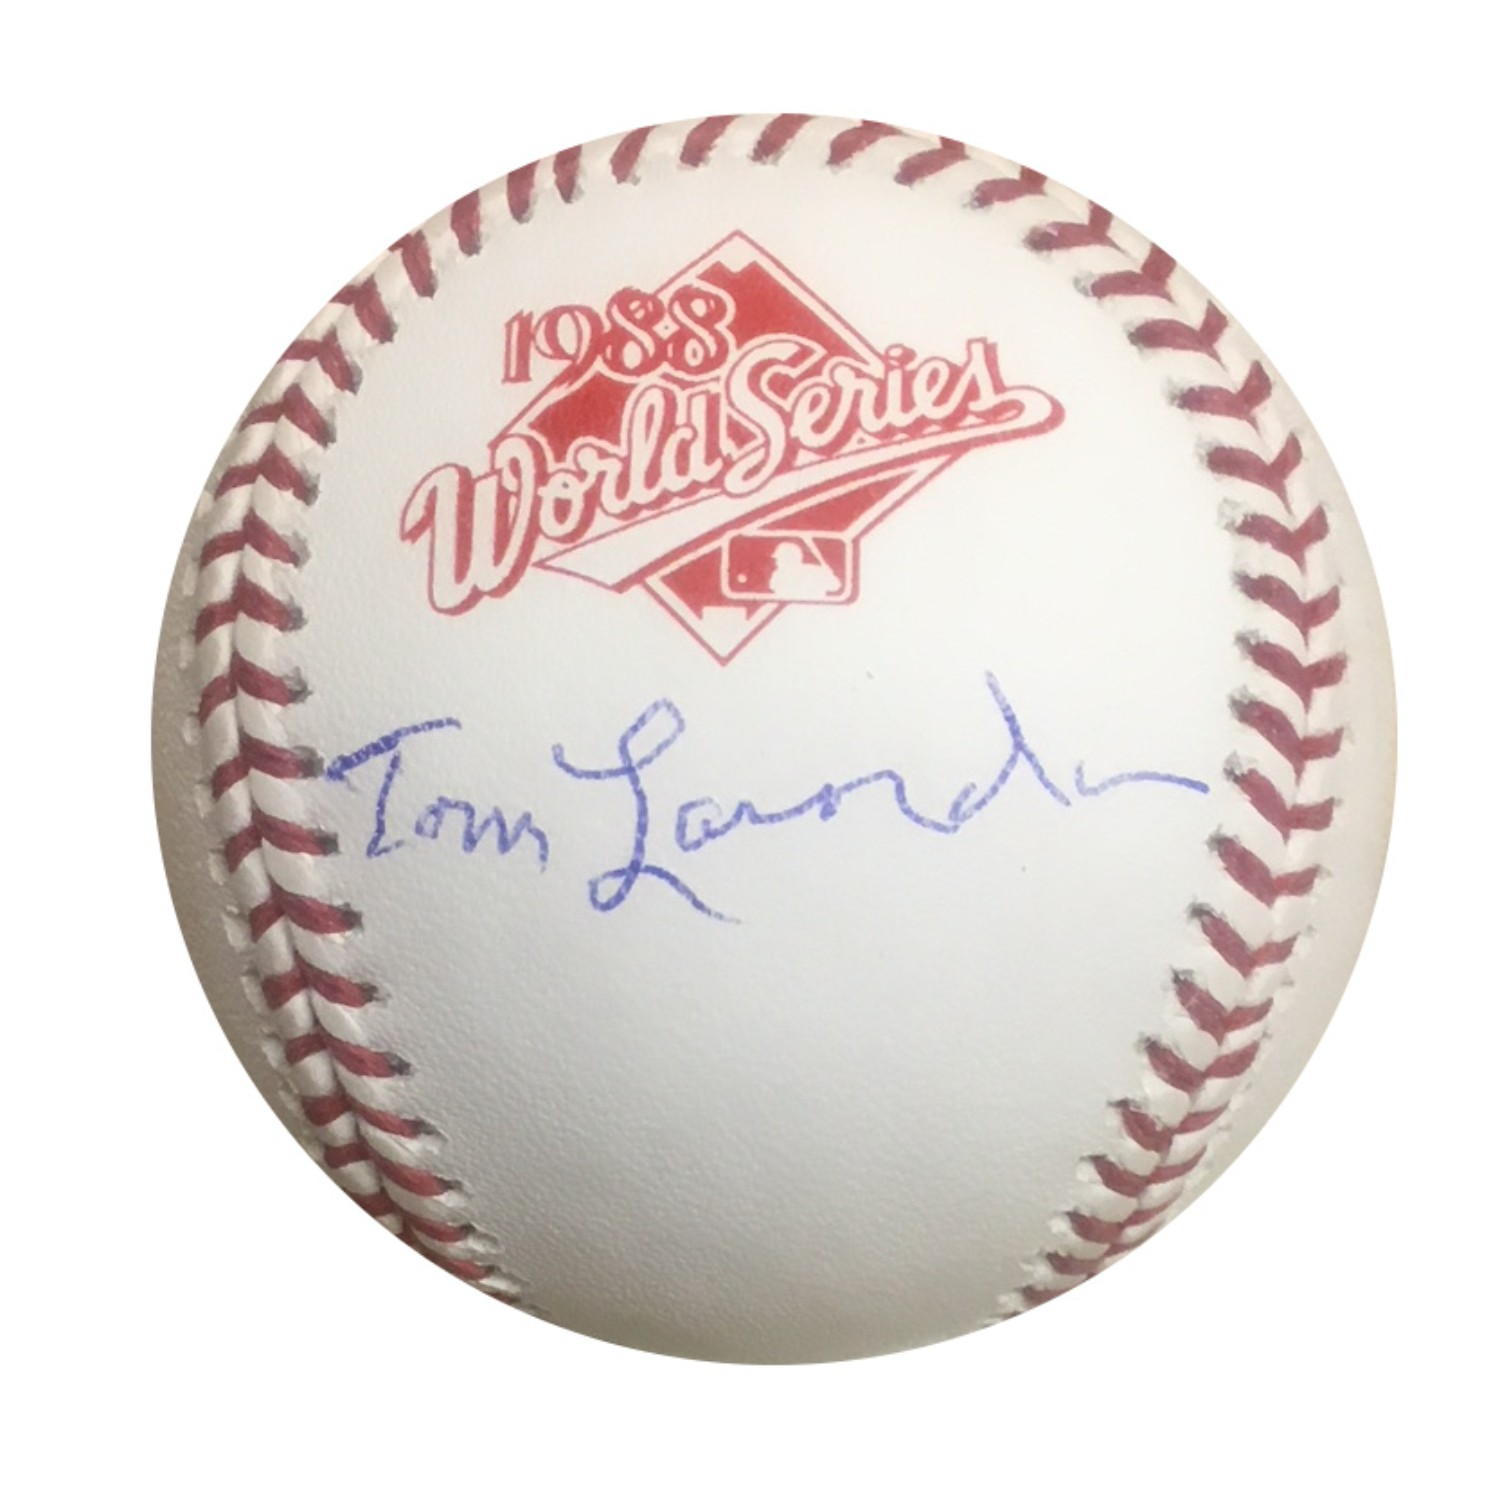 Tommy Lasorda Los Angeles Dodgers Autographed 1988 World Series Signed Baseball JSA COA